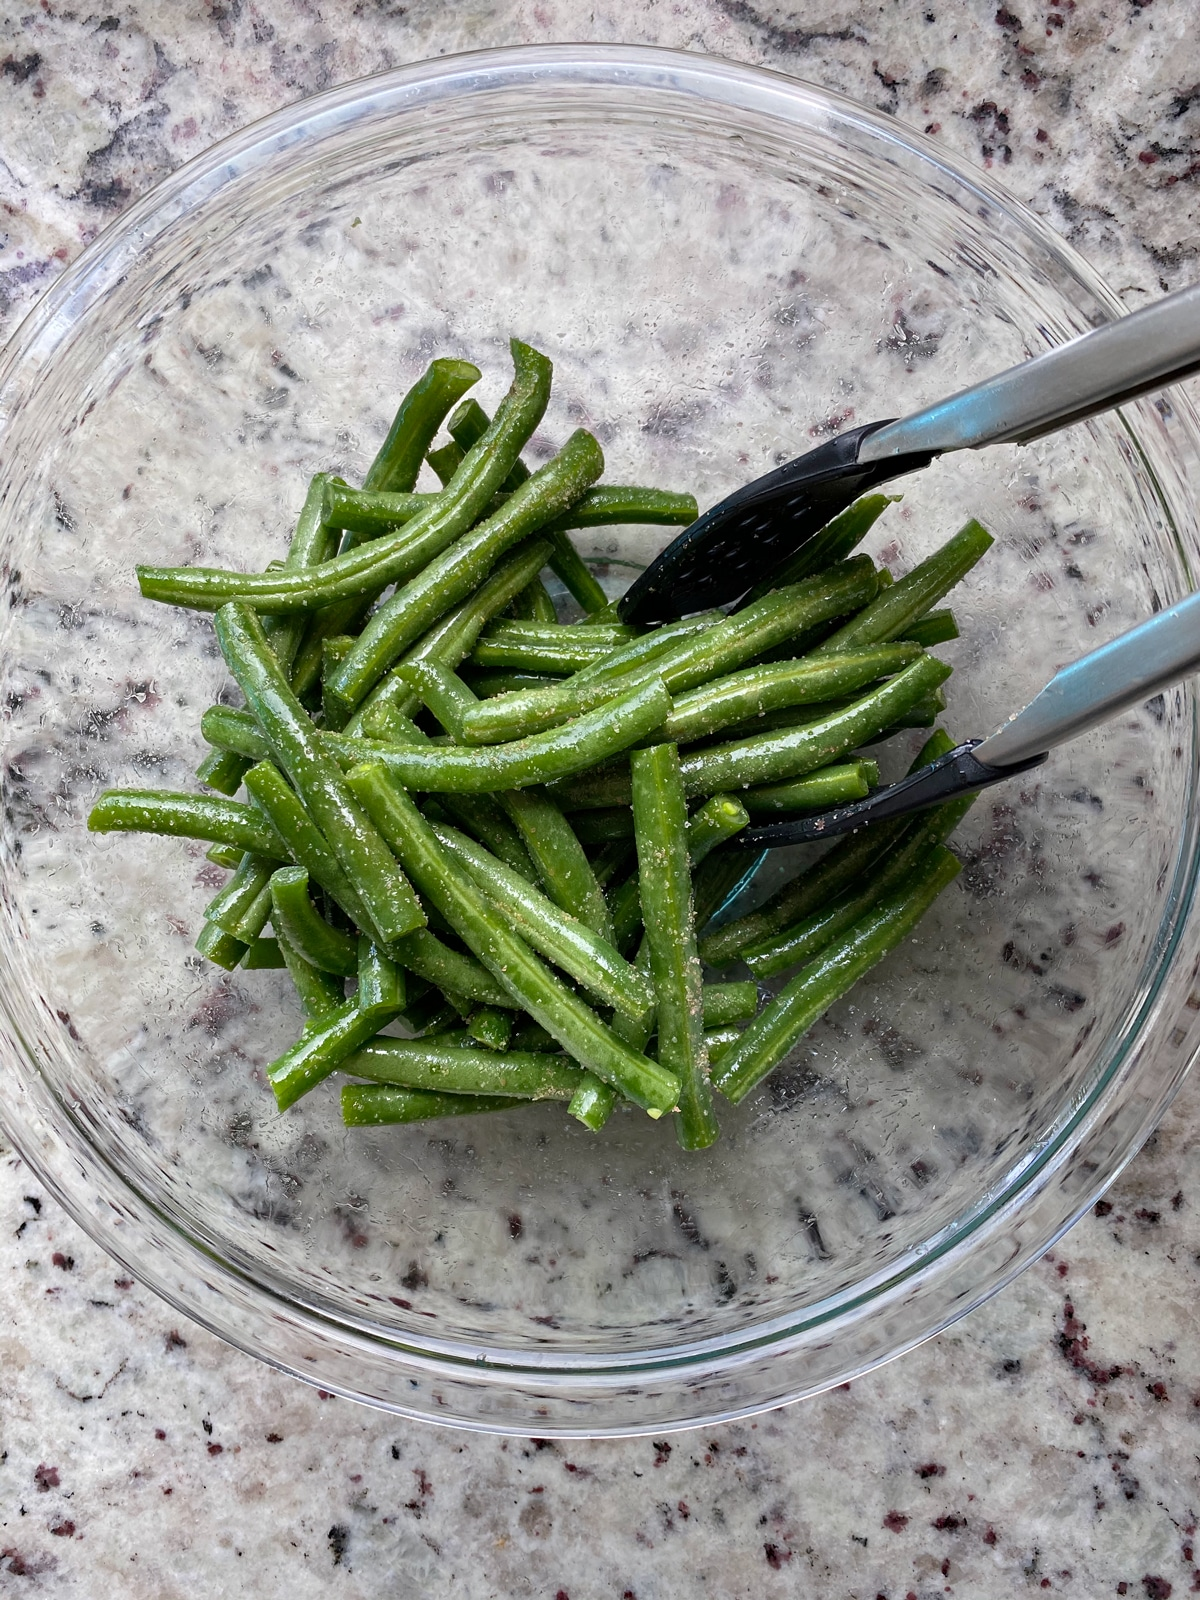 seasoning the green beans